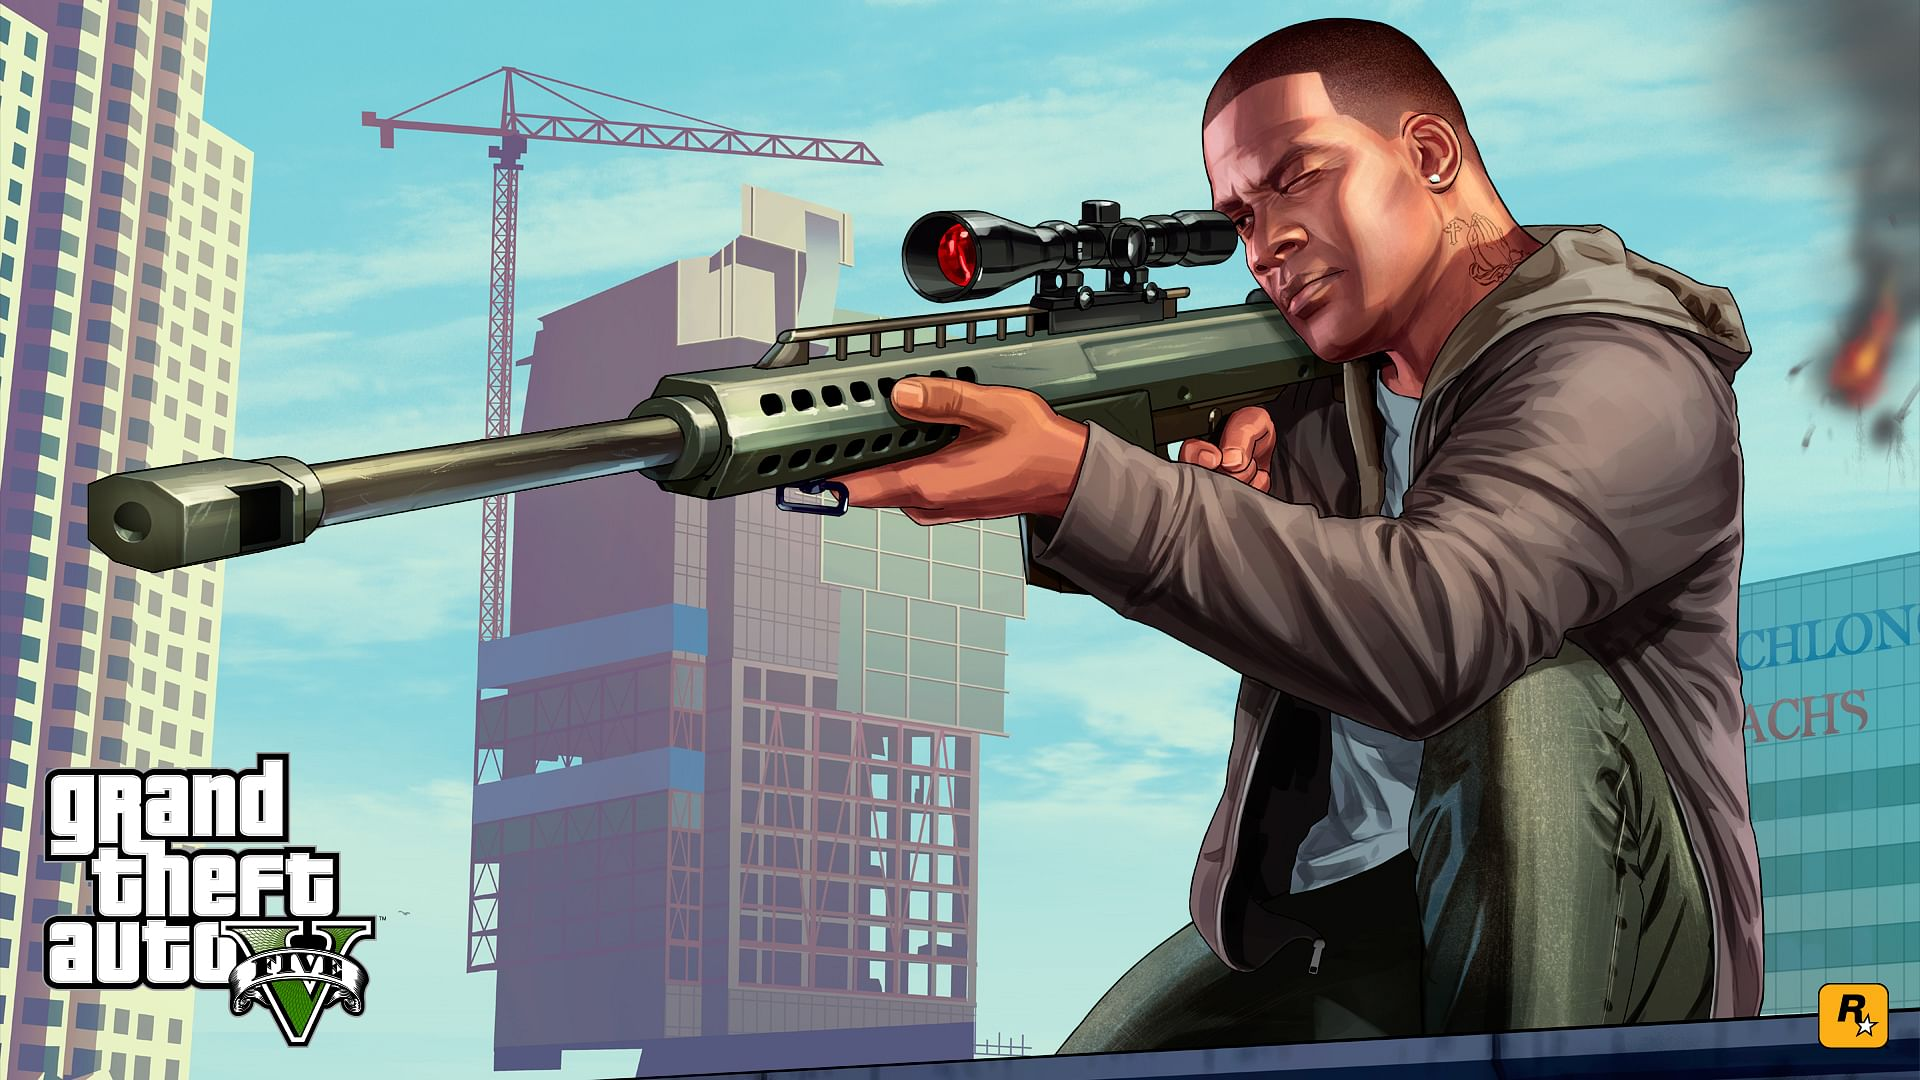 Grand Theft Auto V Release Dates Revealed | Beyond Entertainment